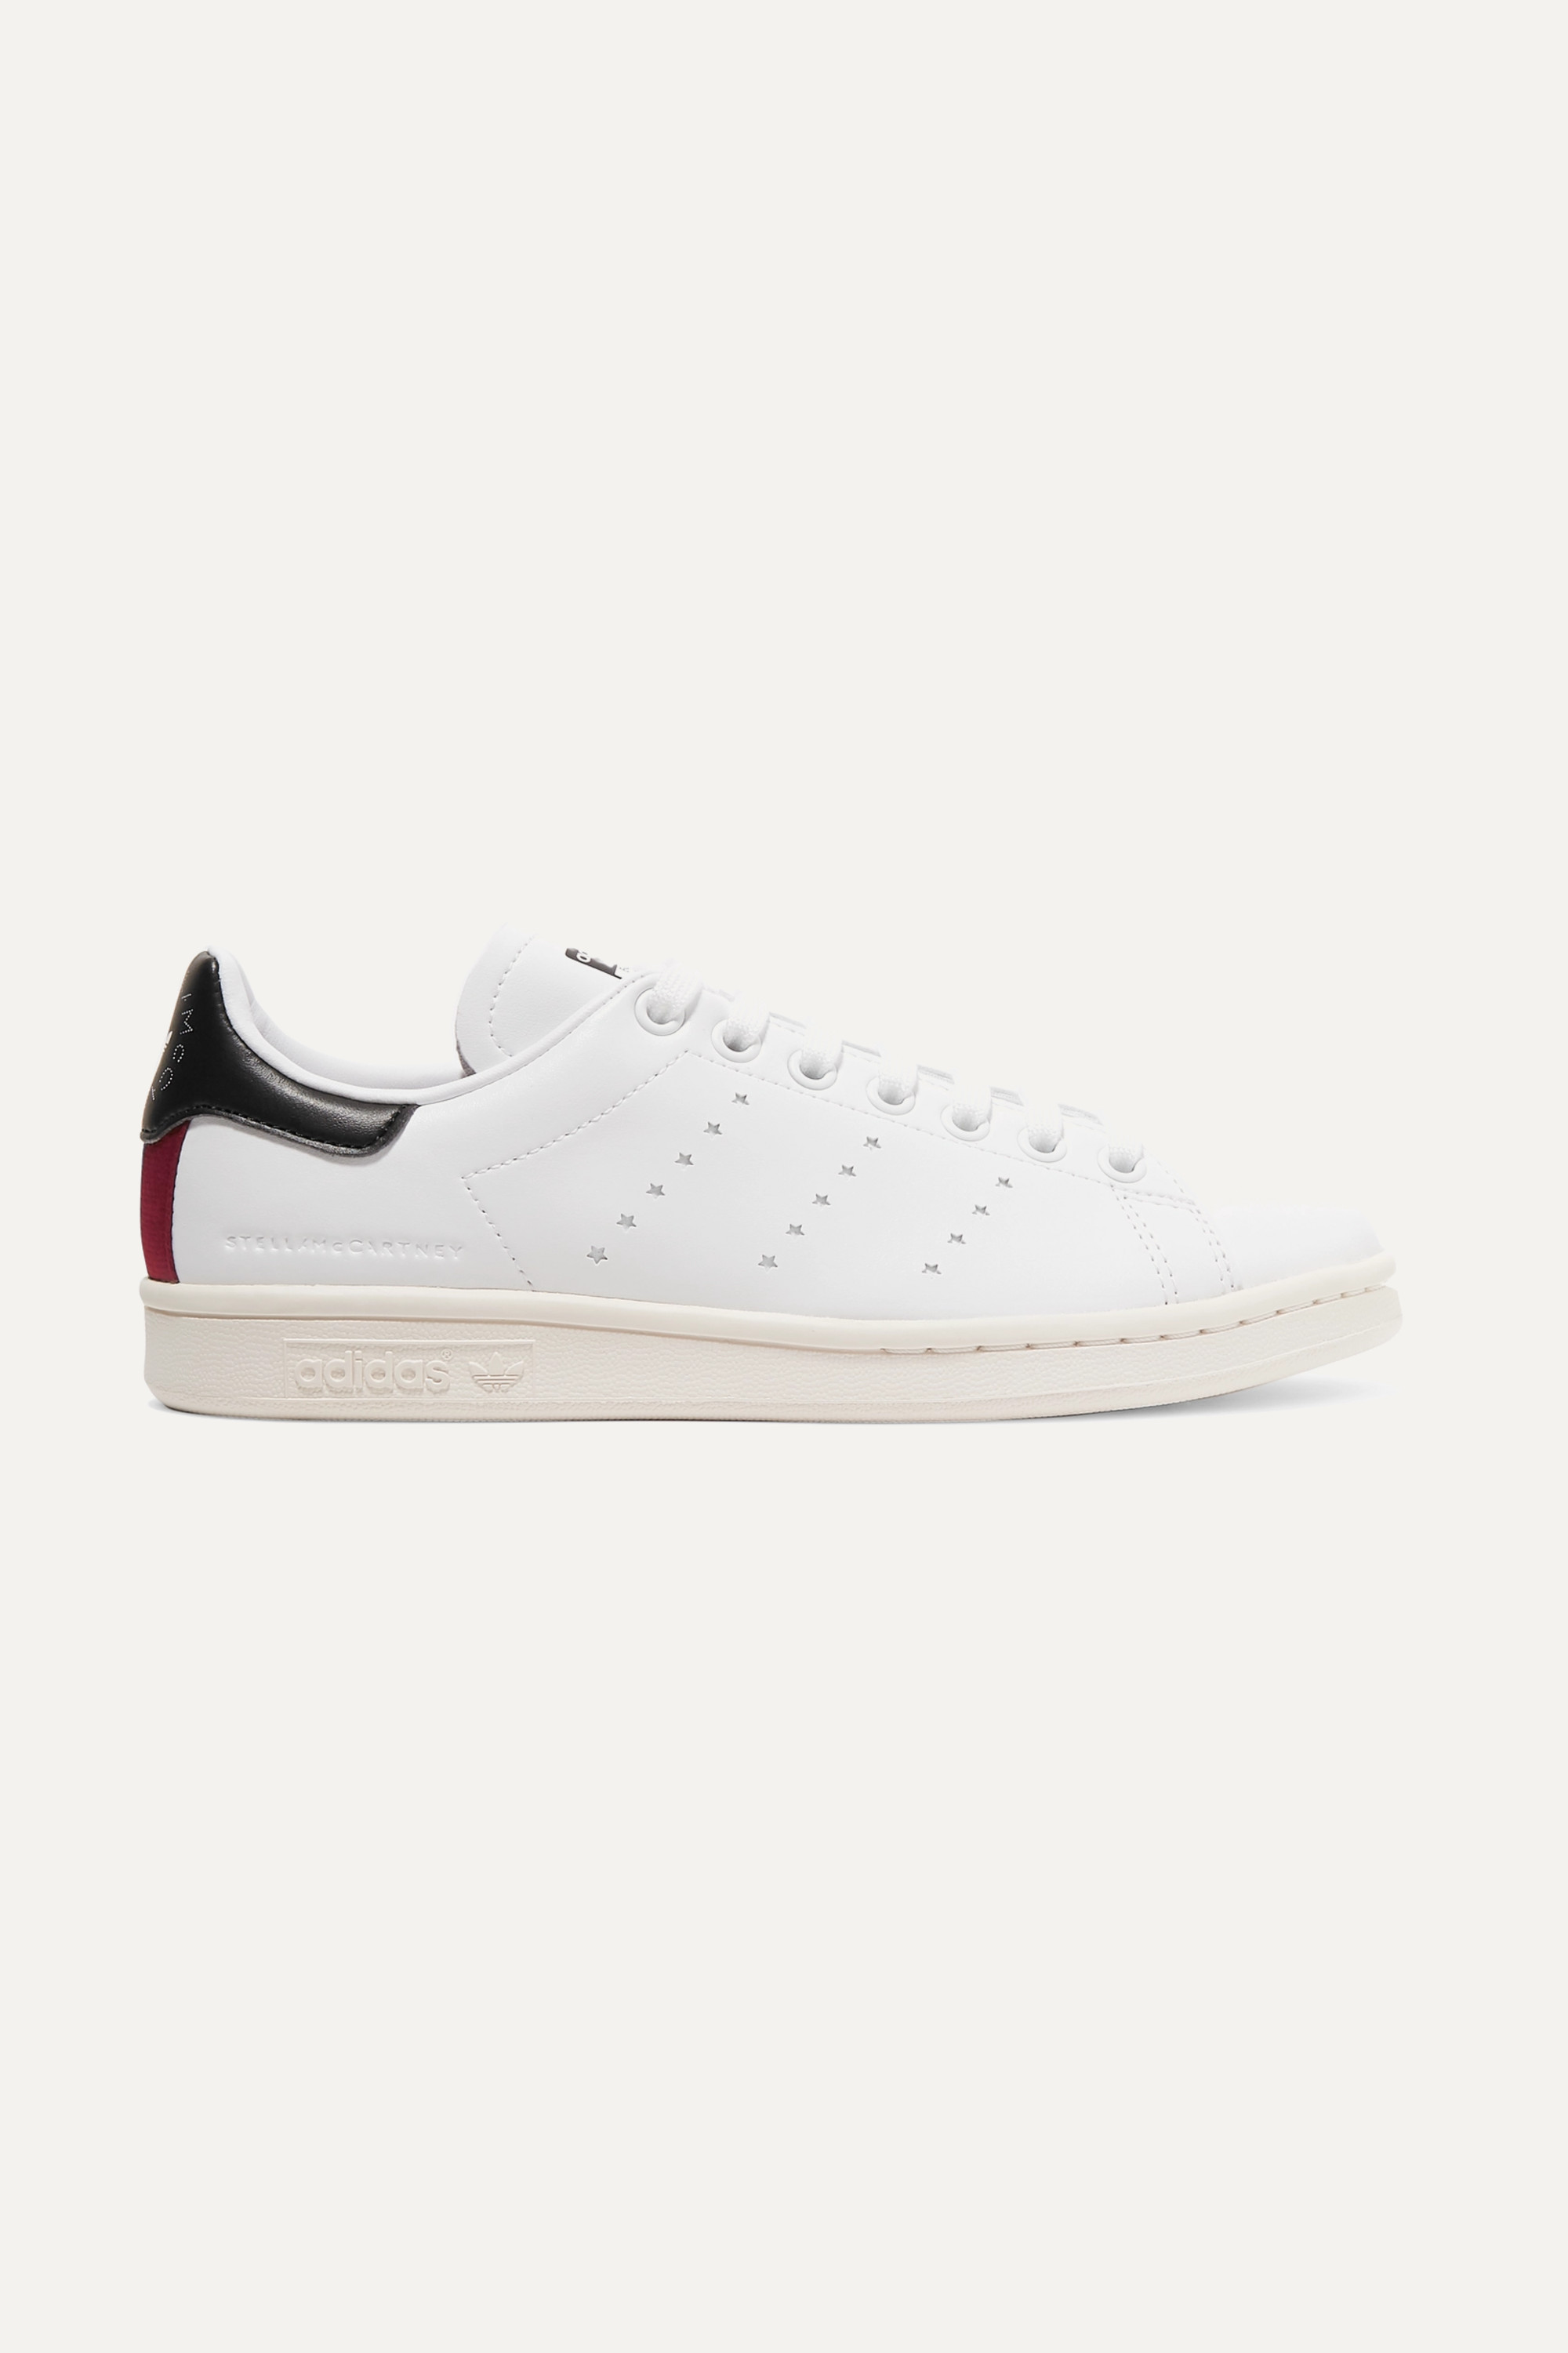 Stella McCartney + adidas Originals Stan Smith grosgrain-trimmed faux leather sneakers